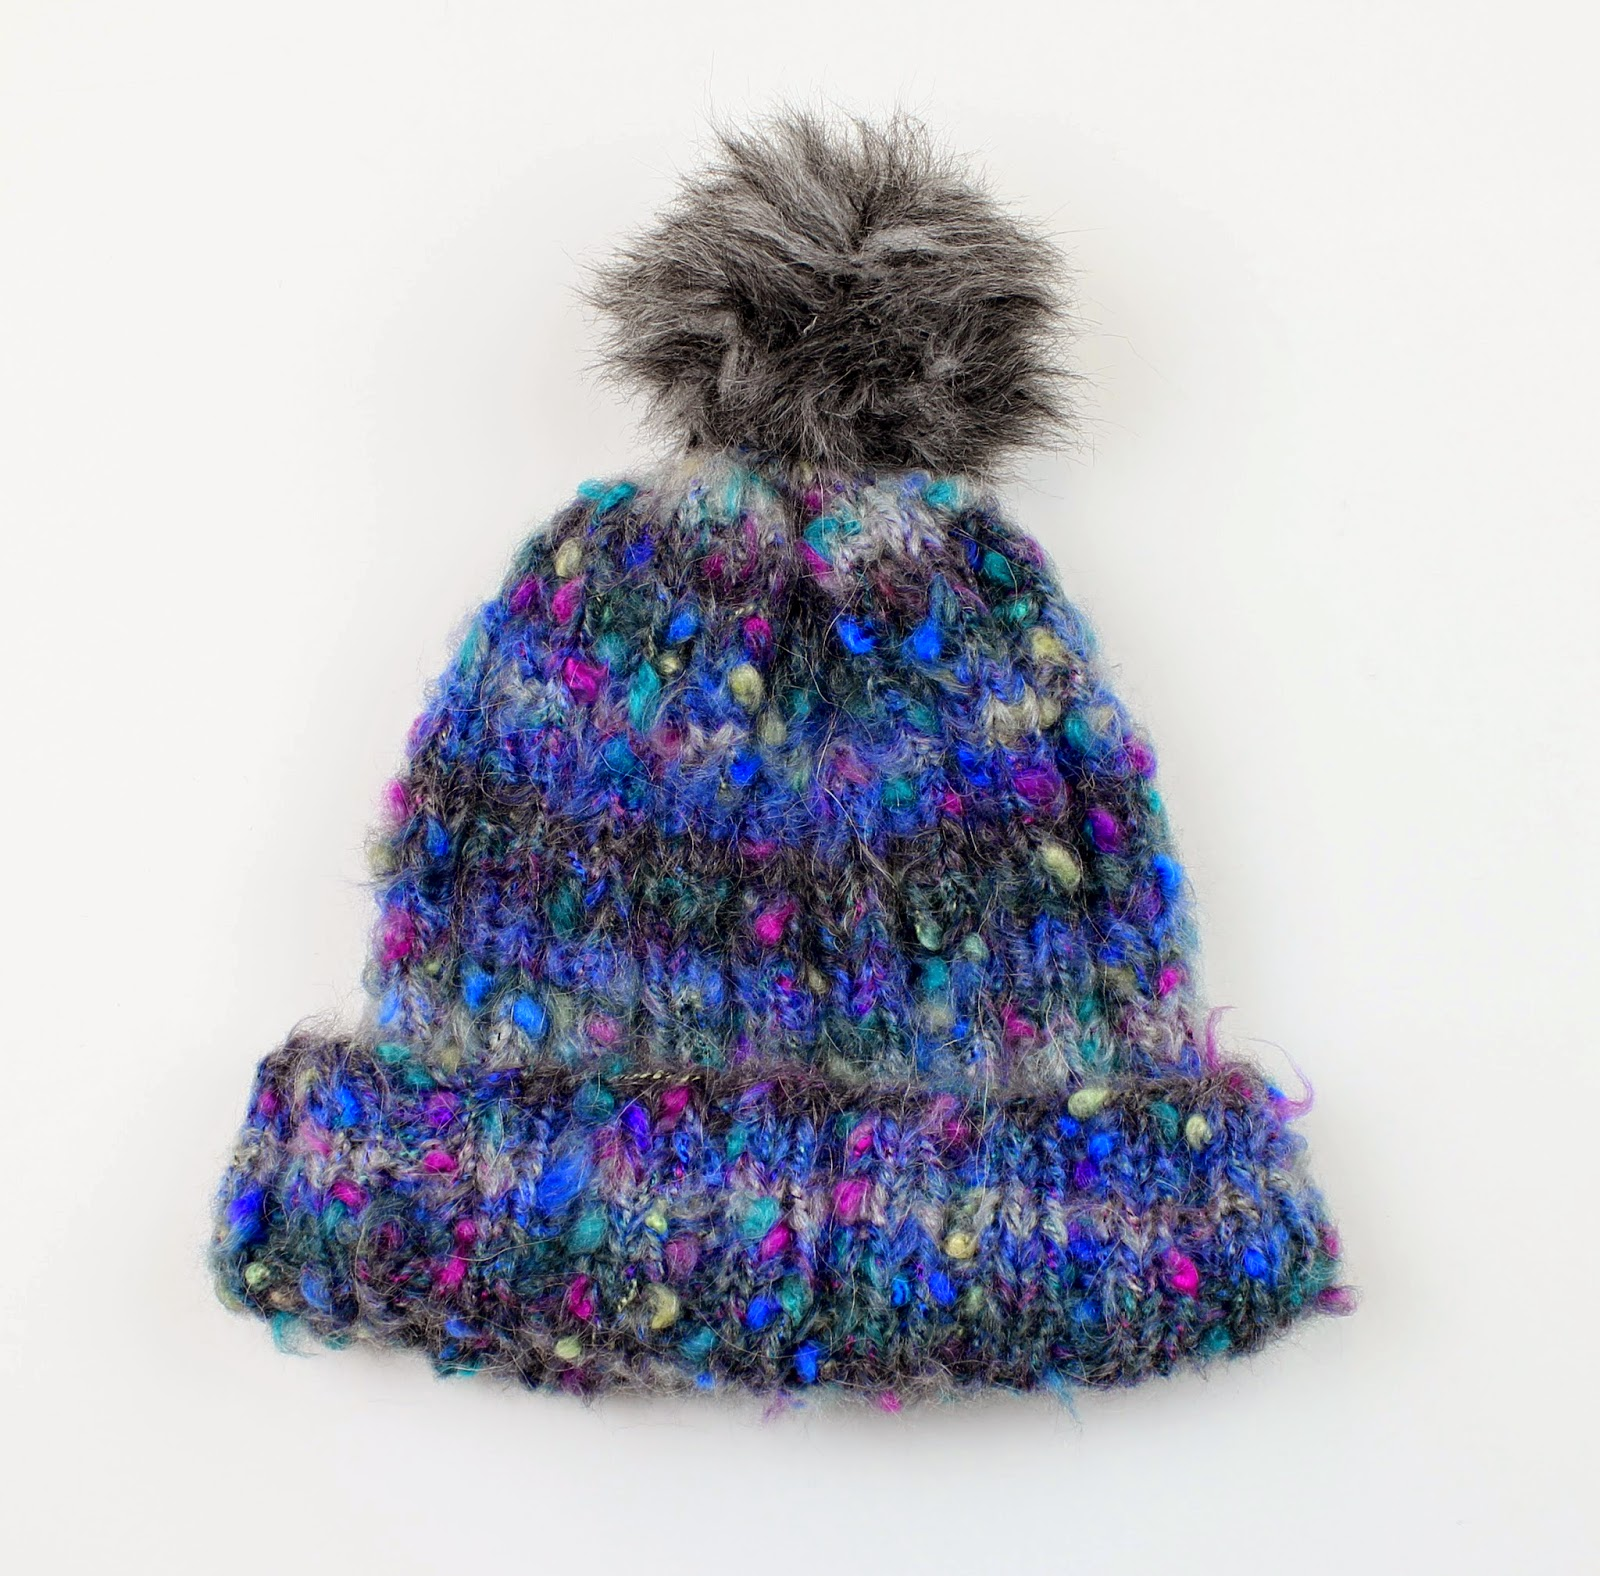 http://www.puppyarn.com/shop/product_info.php/cPath/6_49/products_id/7443